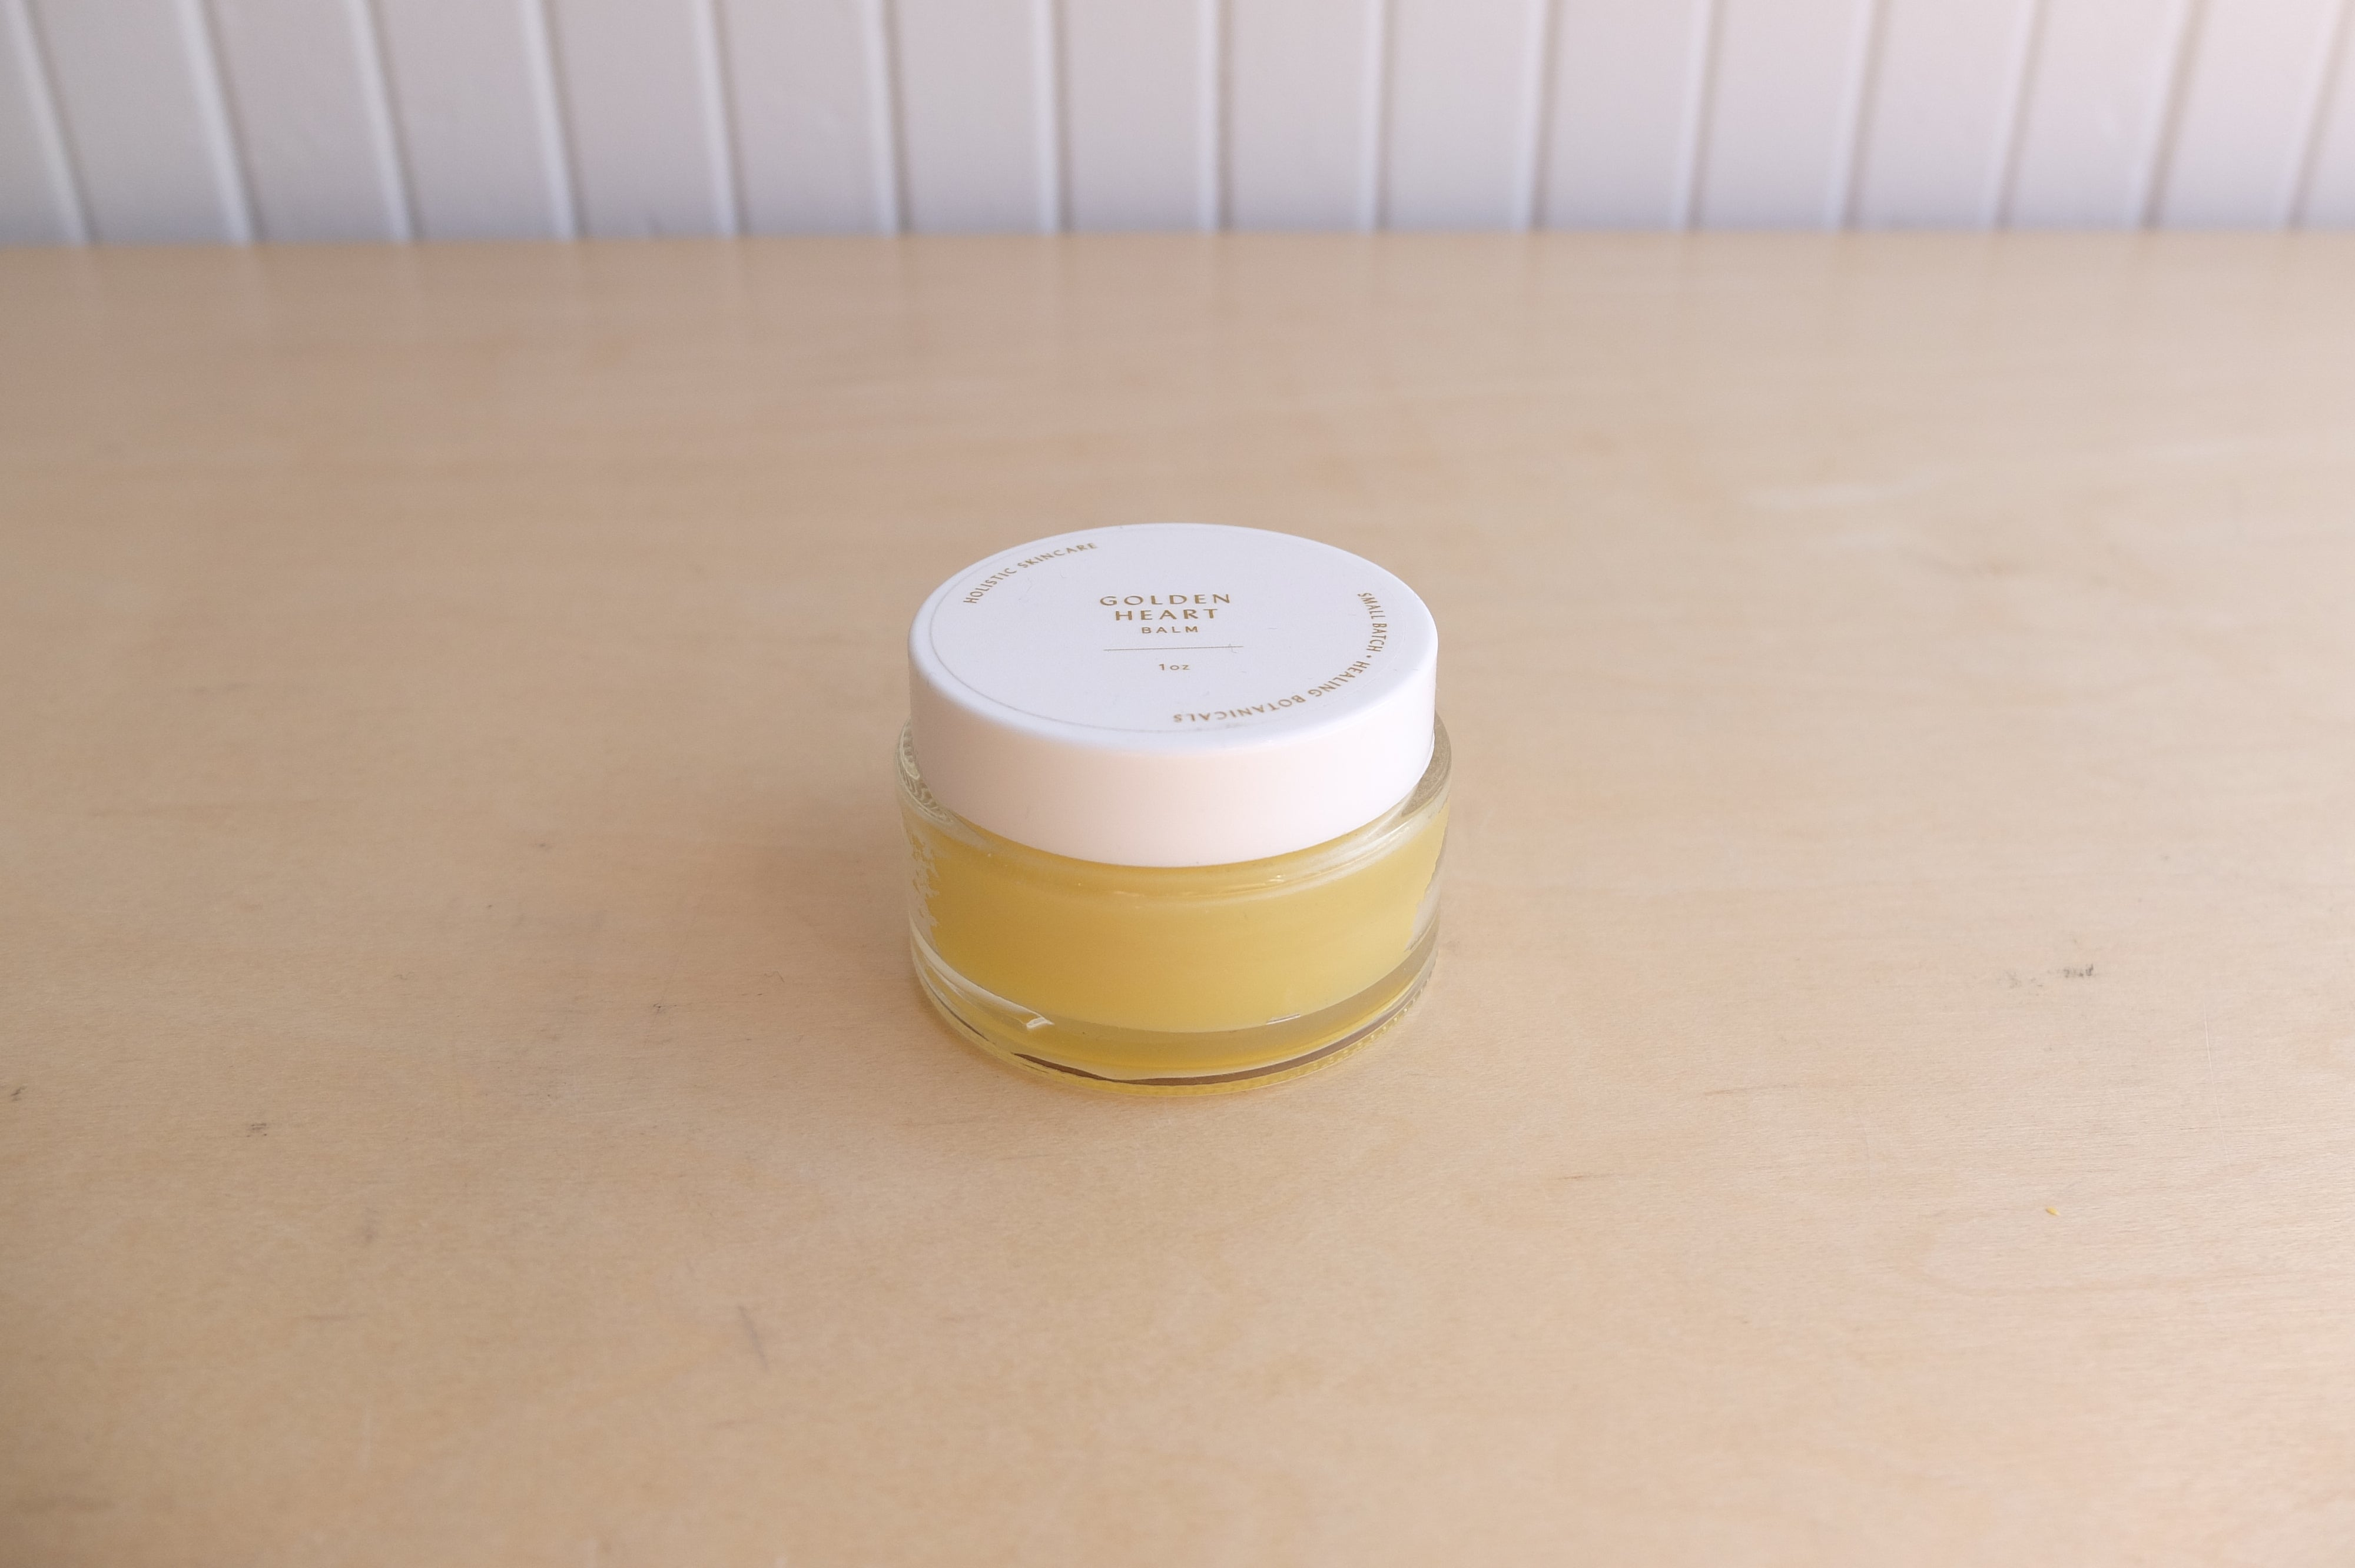 Ula Golden Heart Balm